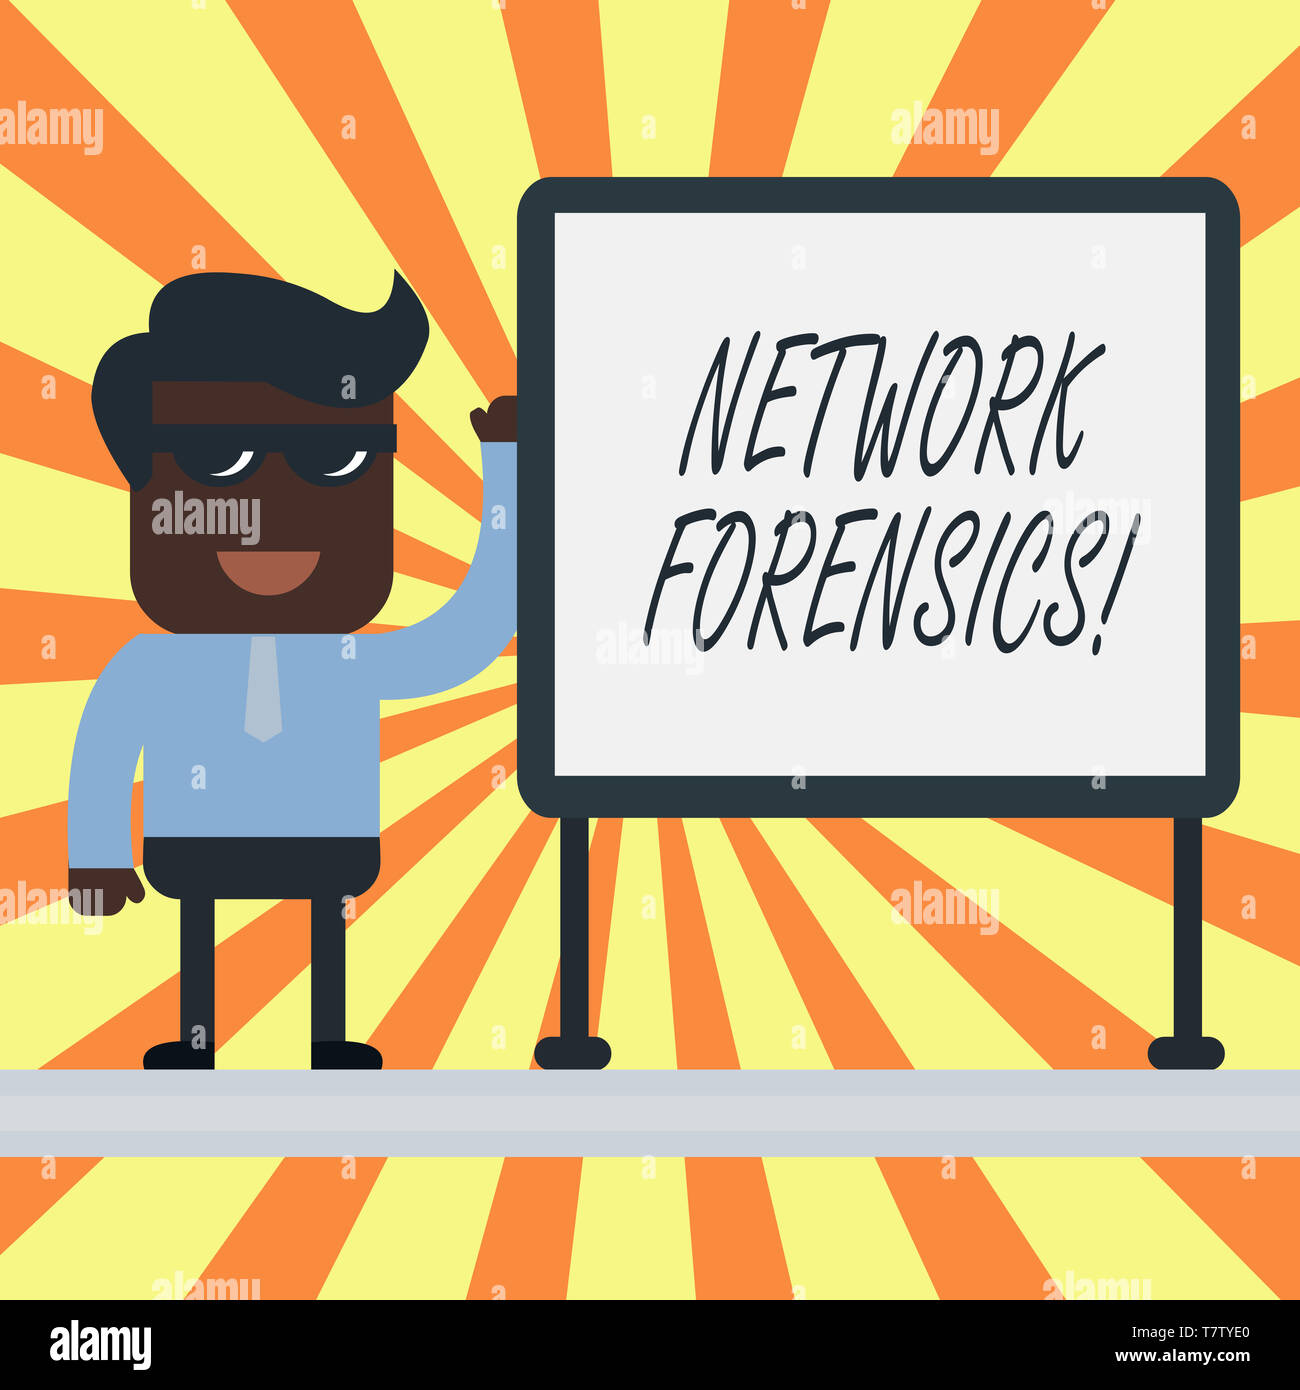 Text sign showing Network Forensics. Business photo showcasing monitoring and analysis of computer network traffic - Stock Image